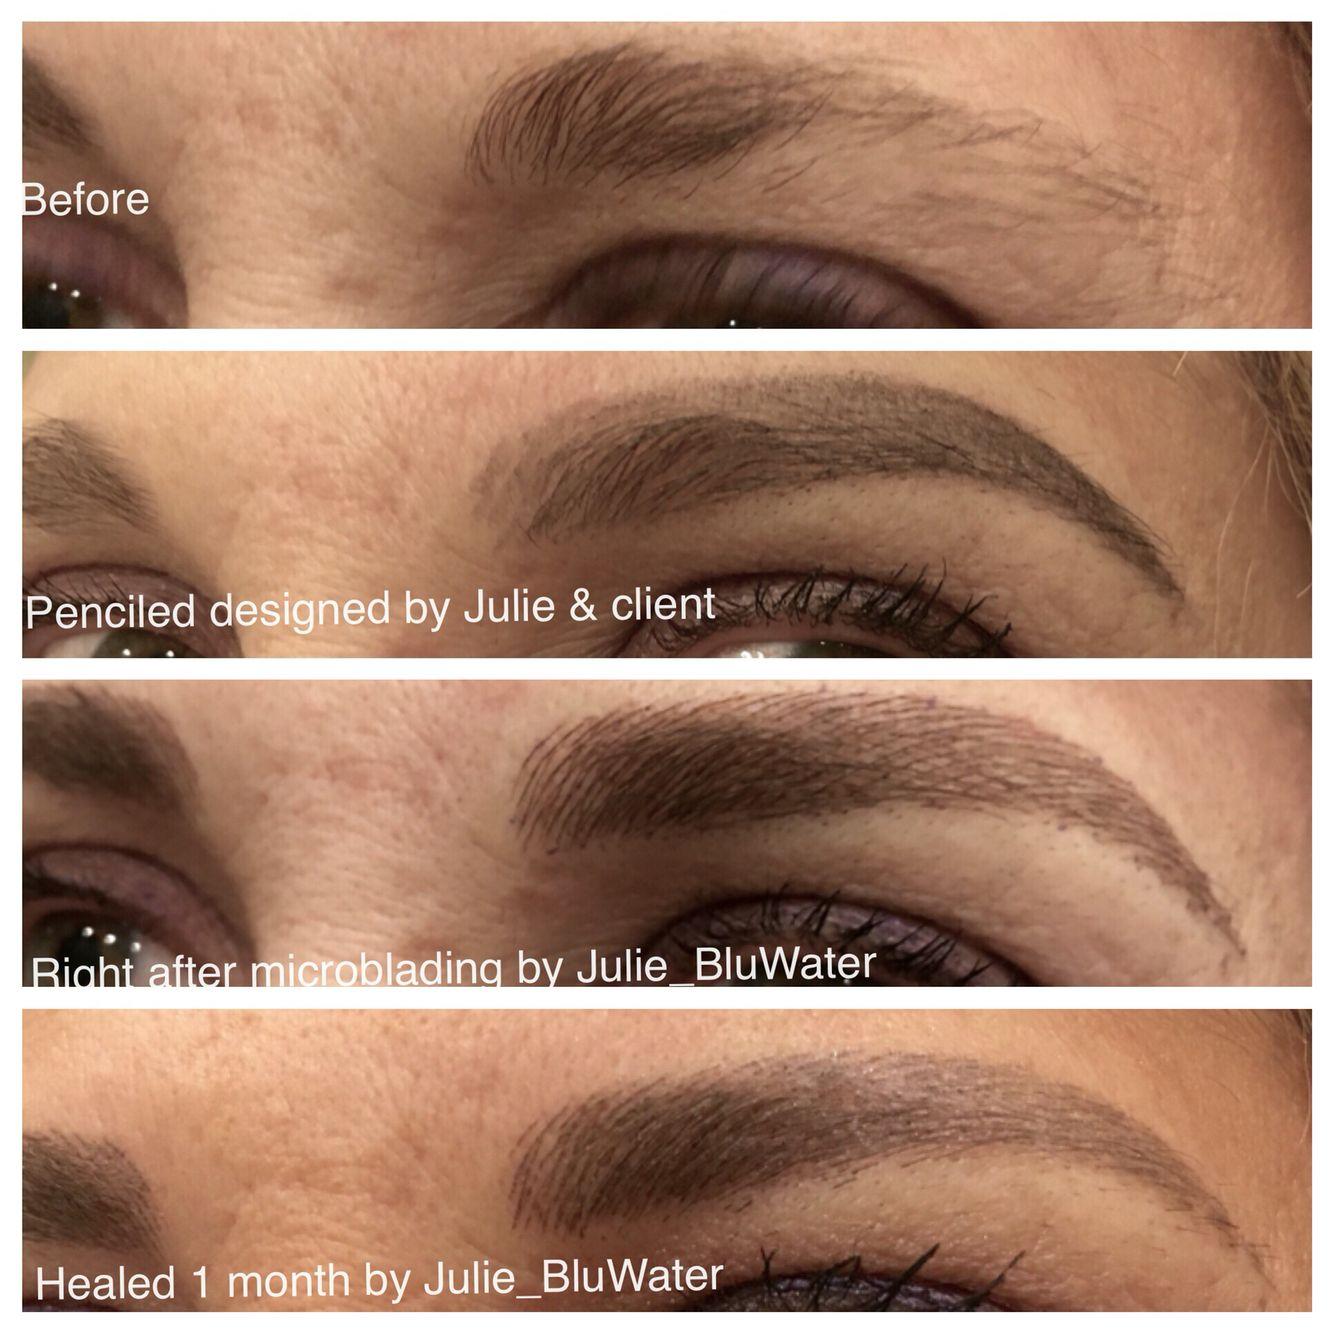 microblading which is a manual tattoo technique for semi